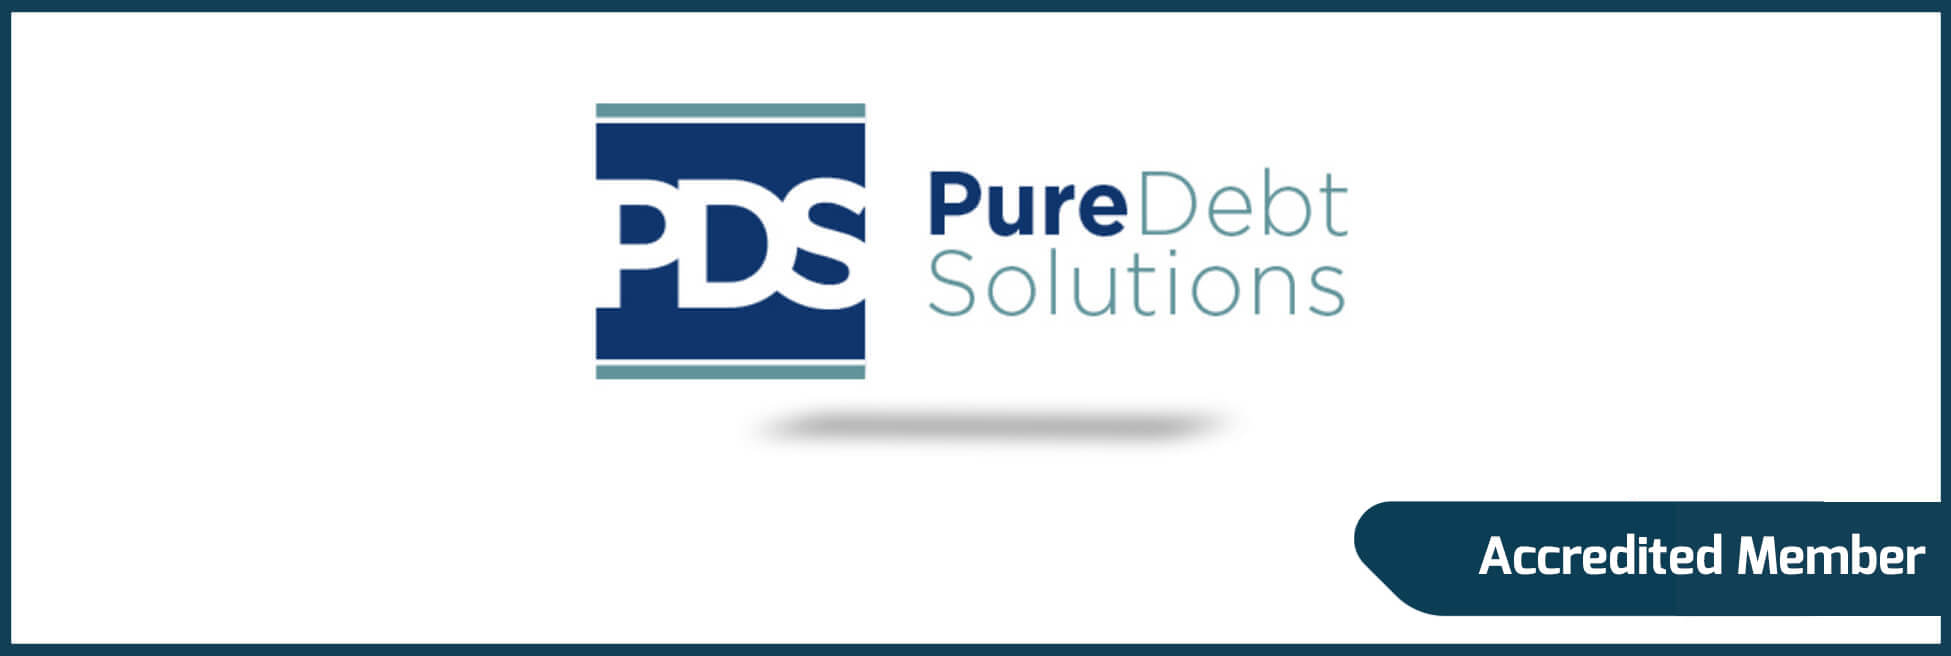 Pure Debt Solutions